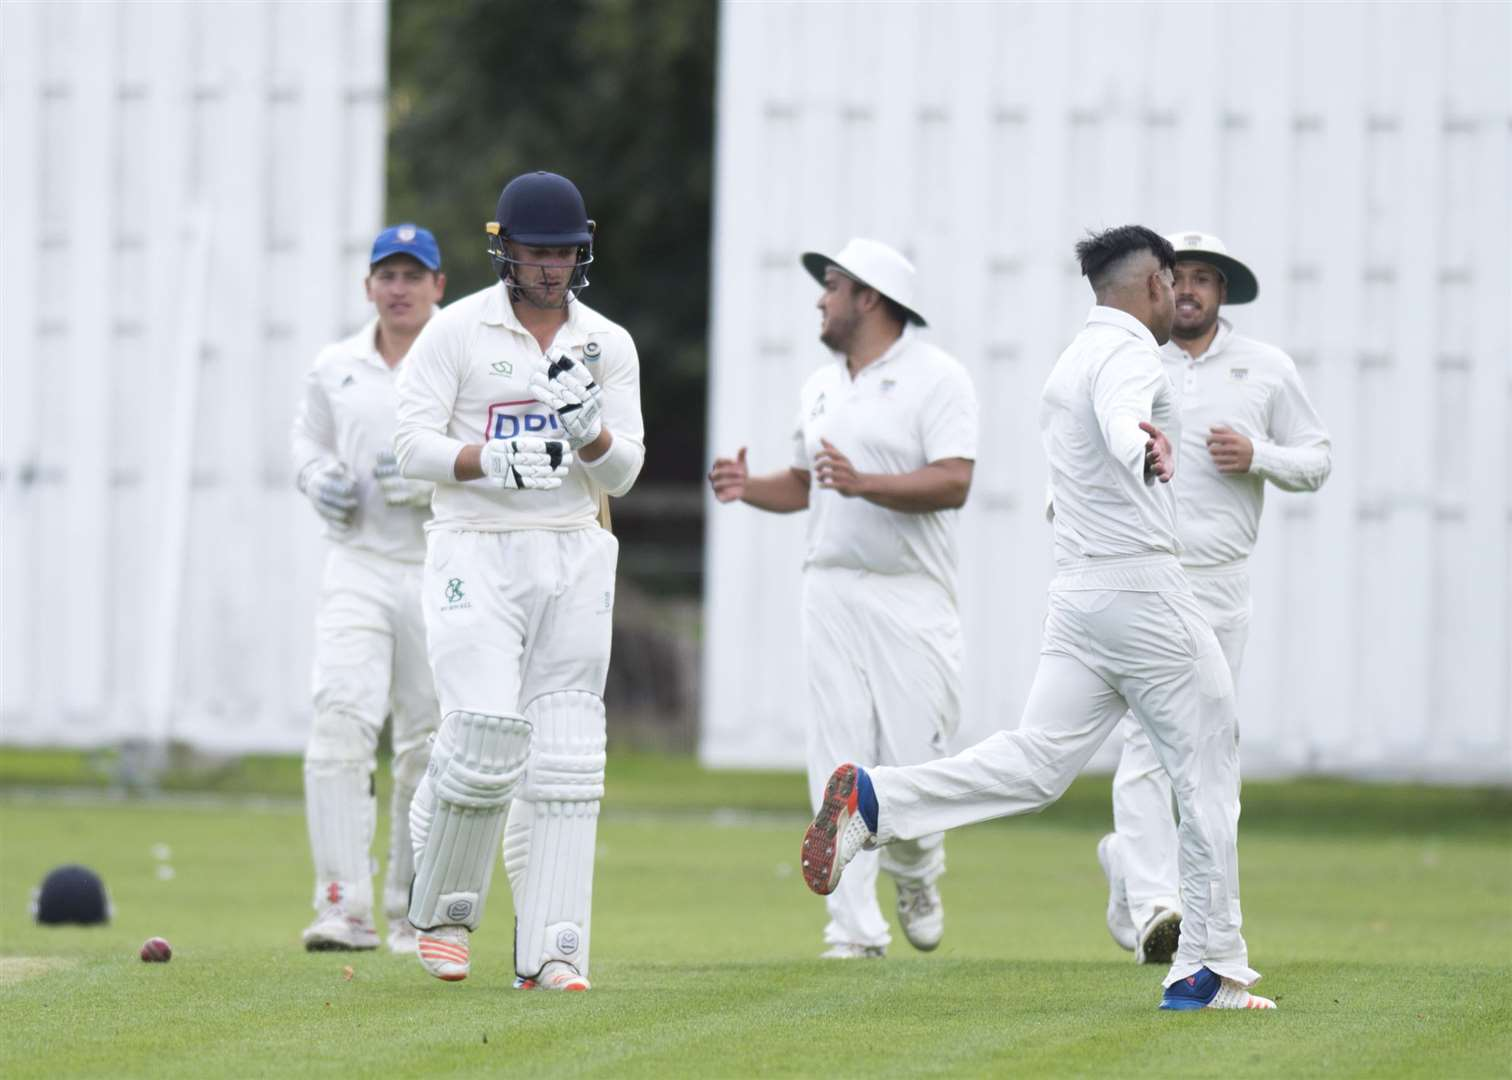 CRICKET: Burwell & Exning v Cambridge Granta Sam Rippington out Picture Mark Westley. (3806337)